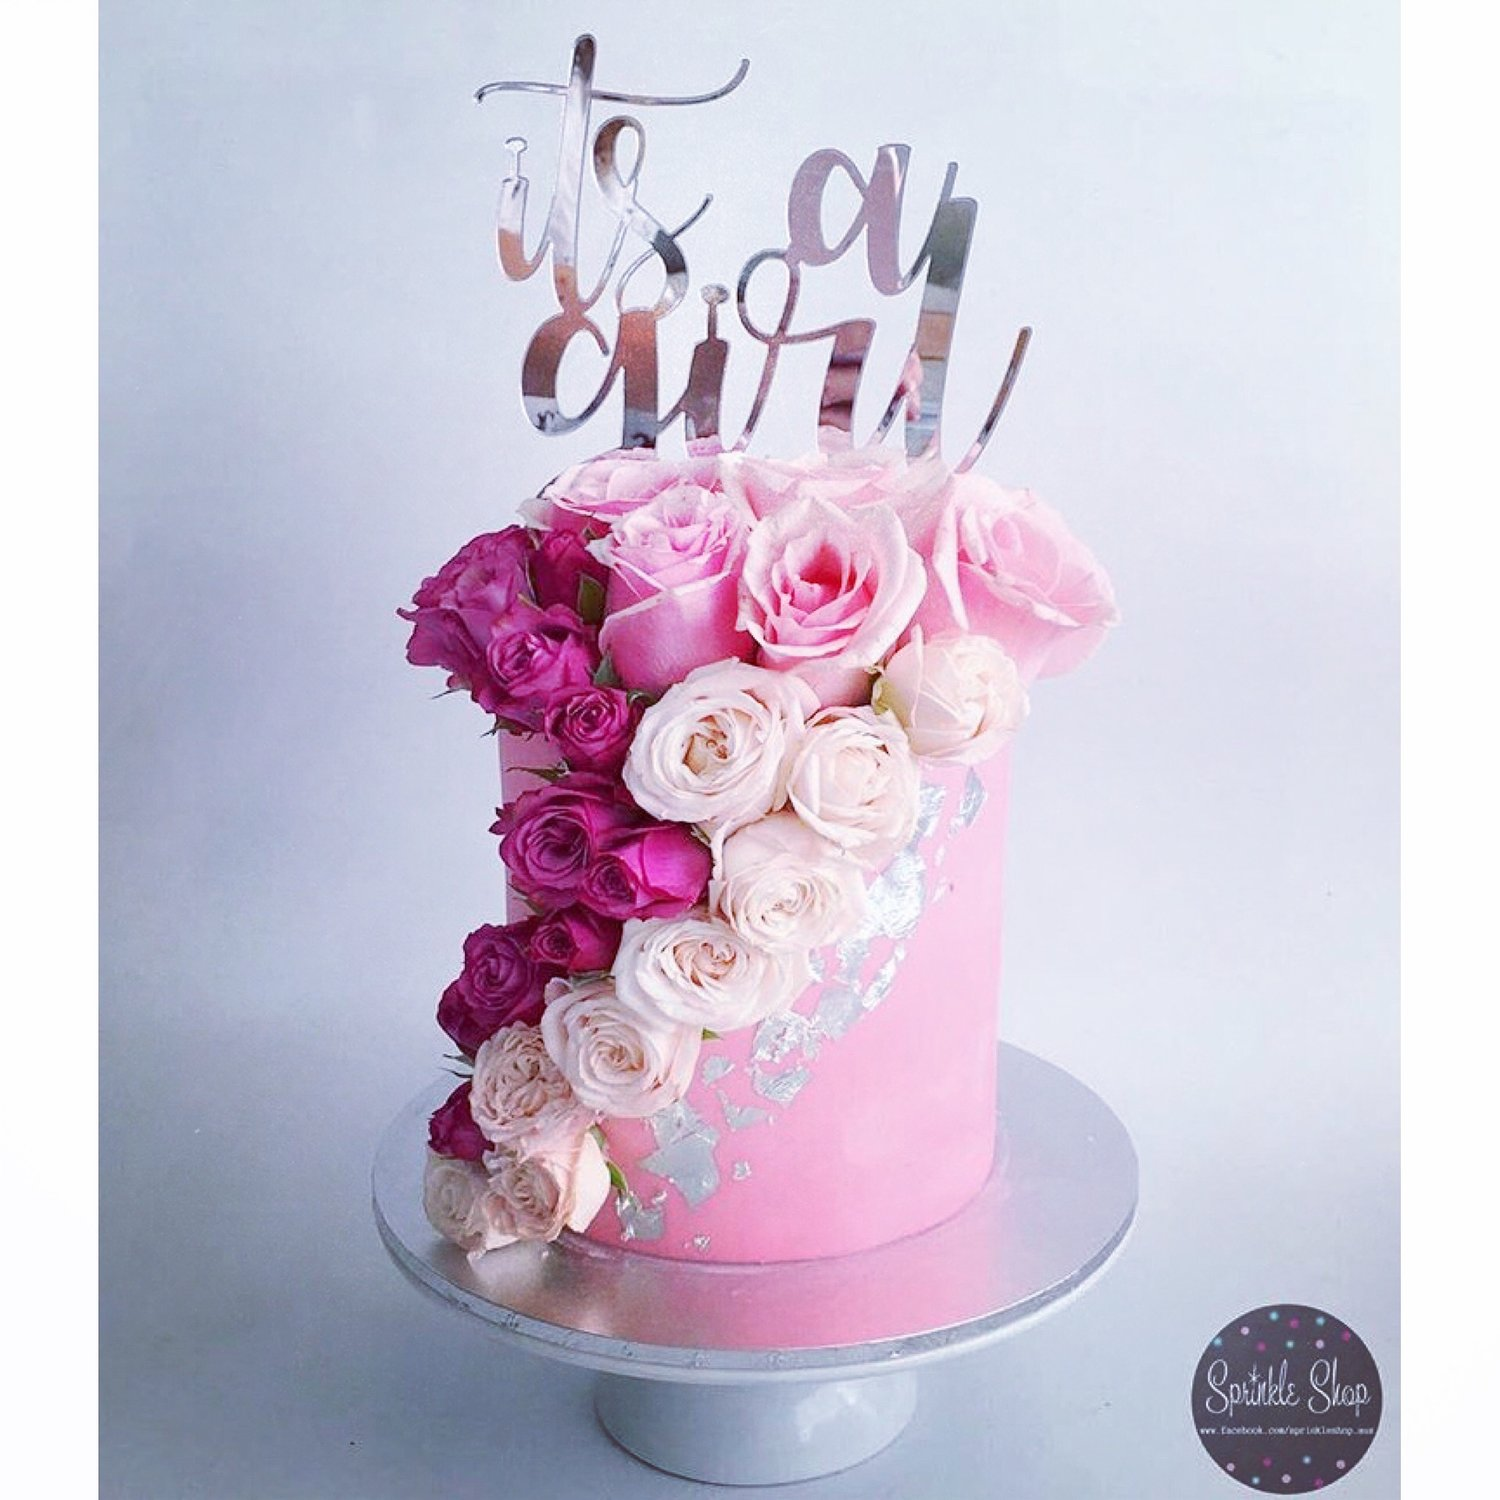 Cake flowers lauren alyce floral design cake flowers mightylinksfo